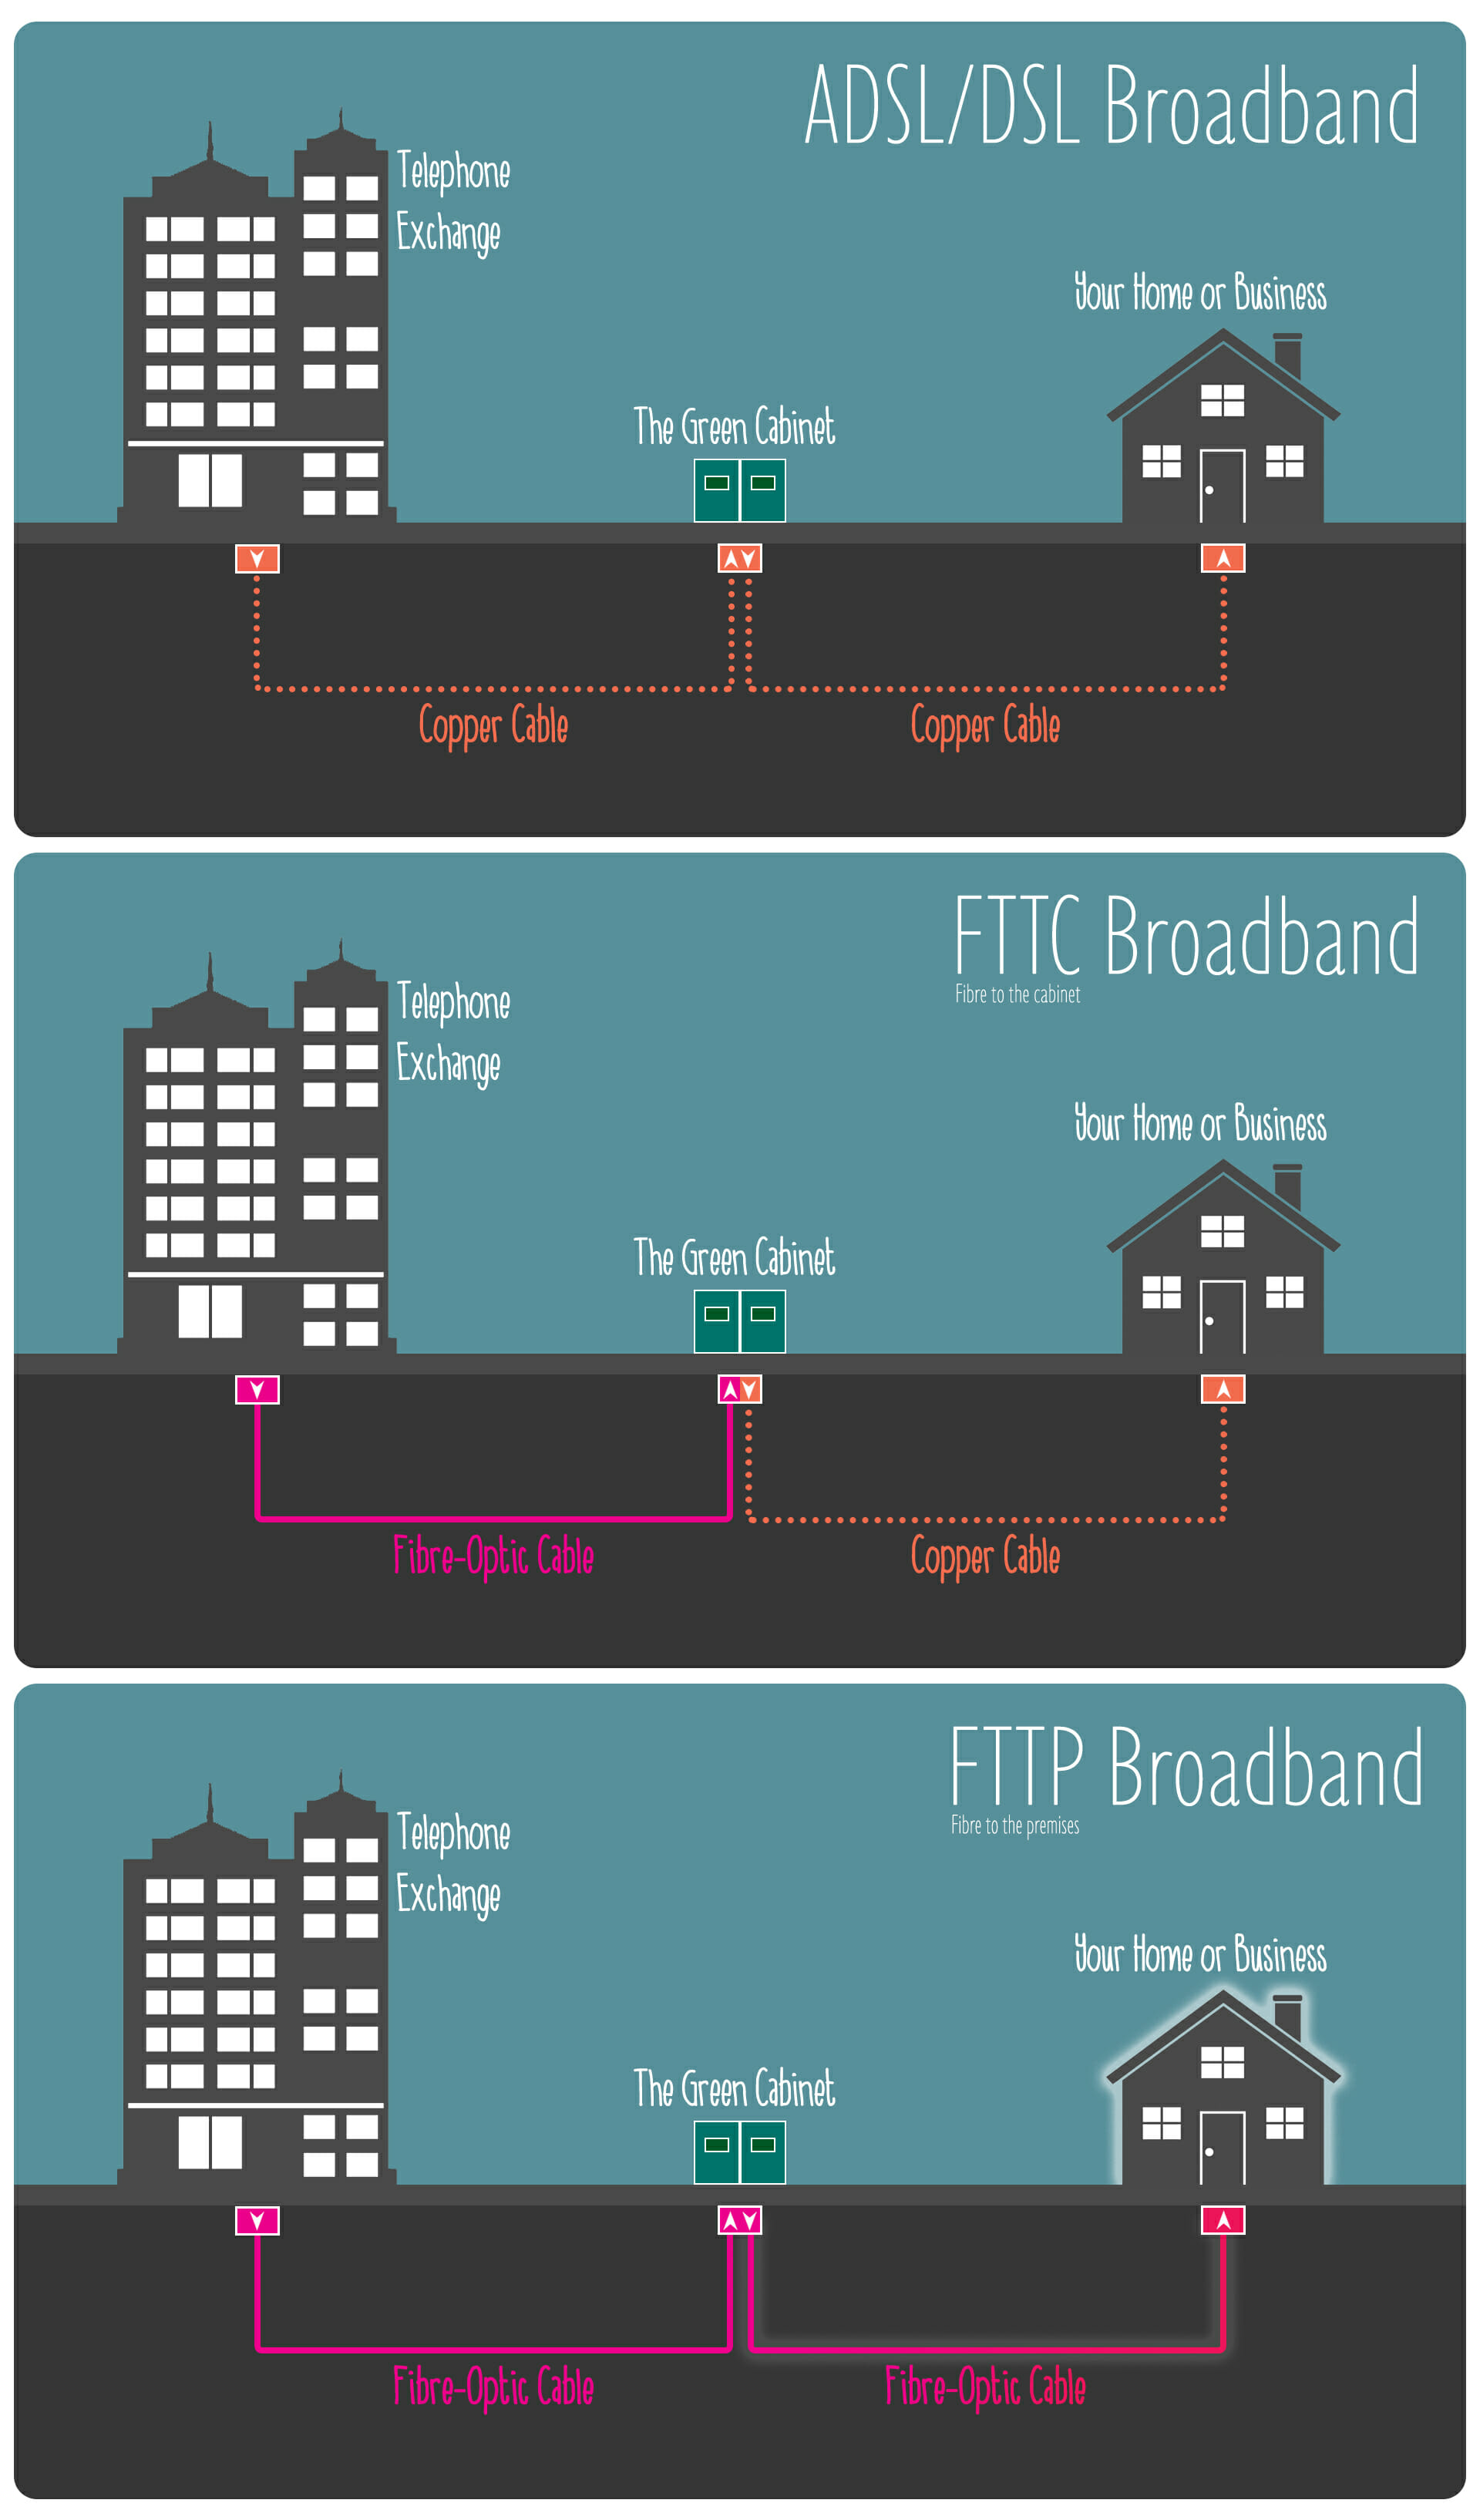 Diagram showing differences between broadband distribution models: ADSL, FTTC, FTTP